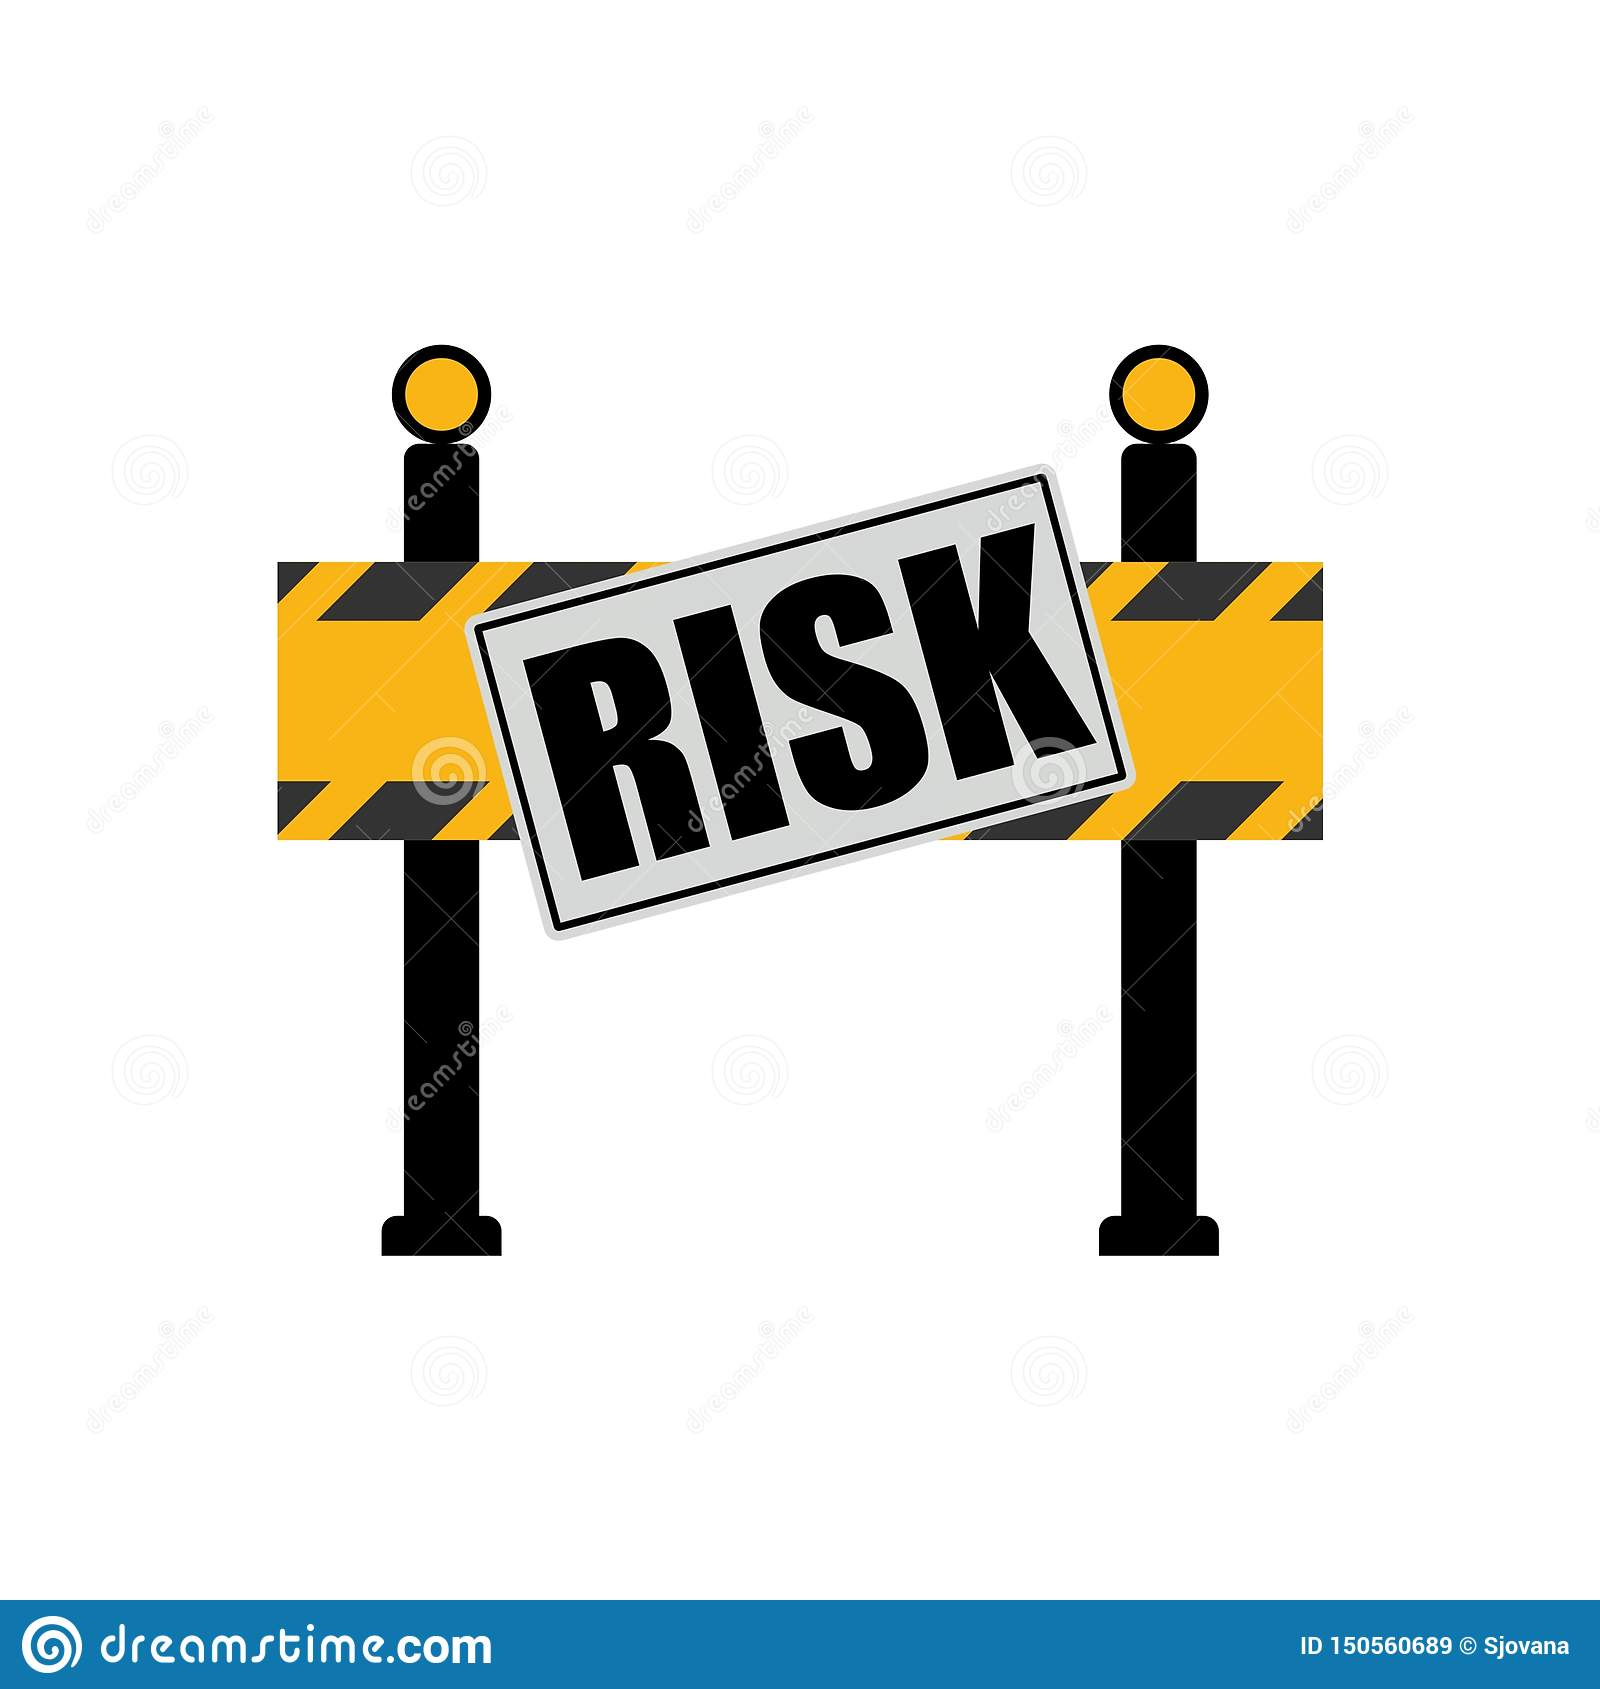 Risk word on road sign, road barrier concept